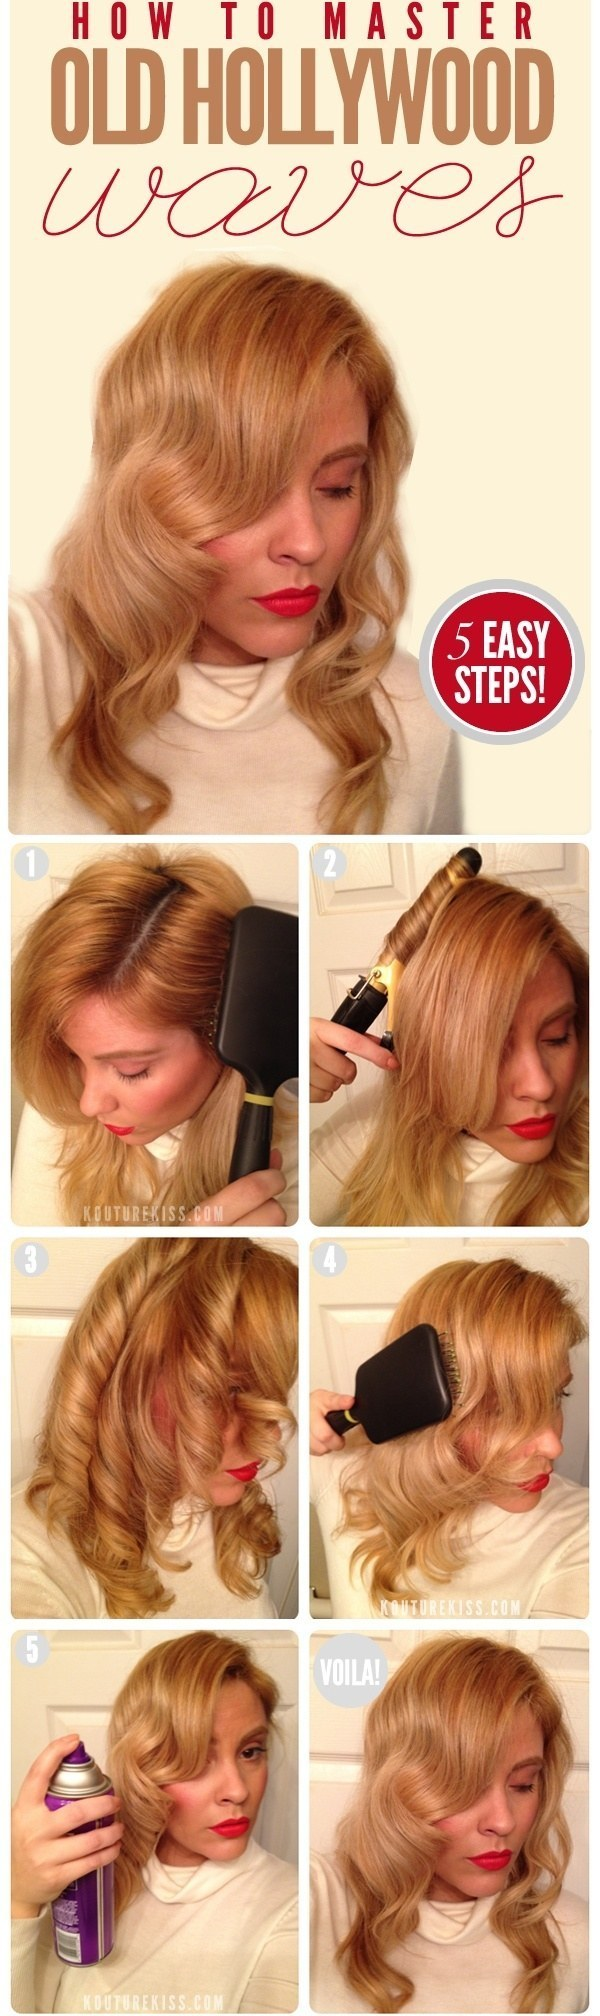 30 DIY Vintage Hairstyle Tutorials For Short Medium Long Hair